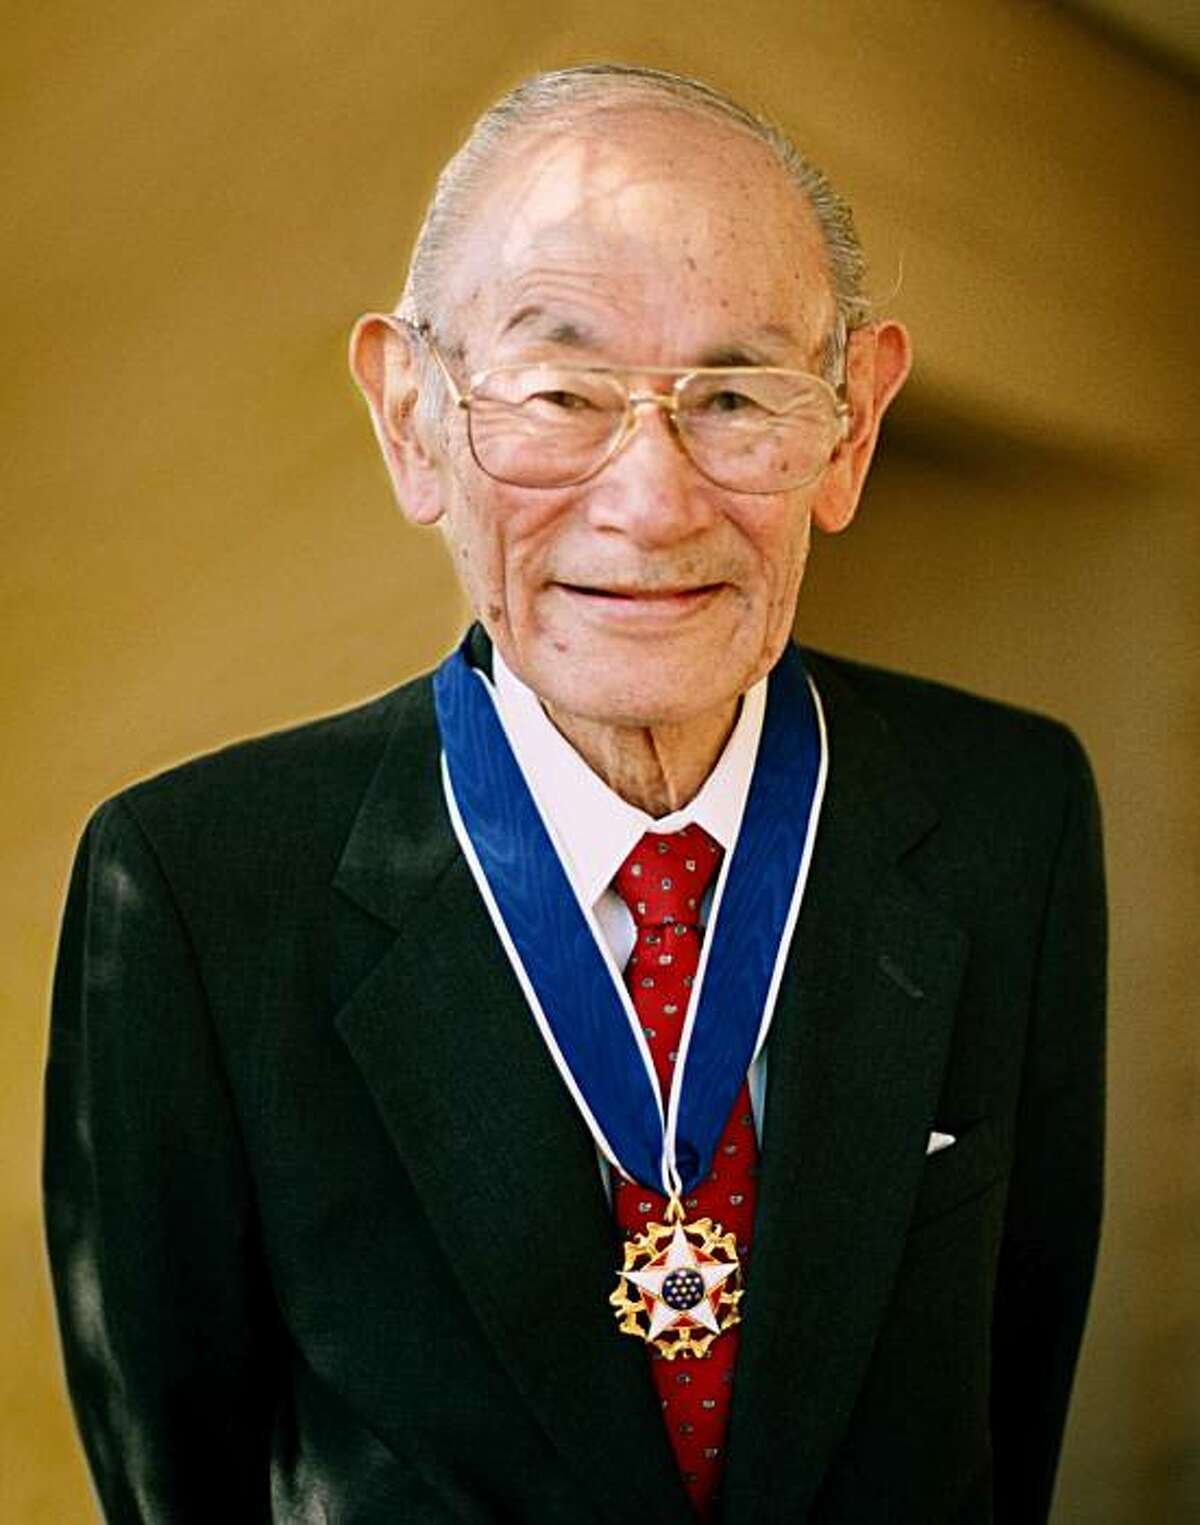 Fred Korematsu wearing his Presidential Medal of Freedom, 1998.